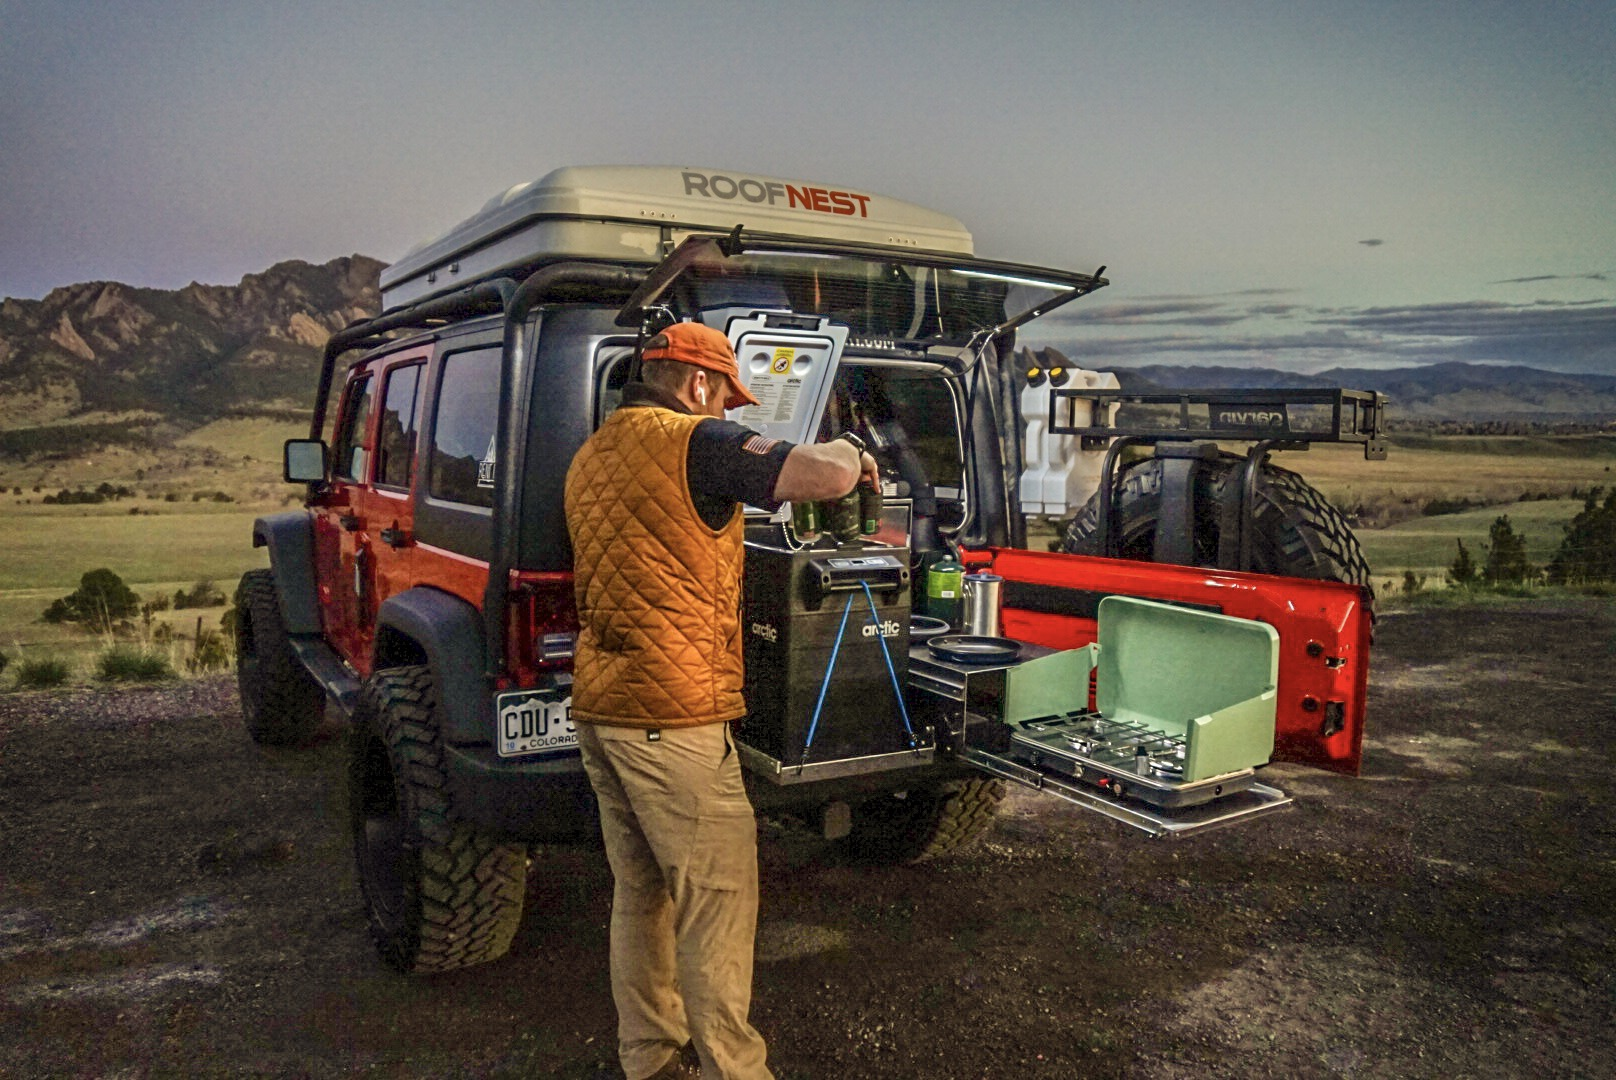 Jeep Rubicon Camper Rental 4 Door Overland Discovery 174